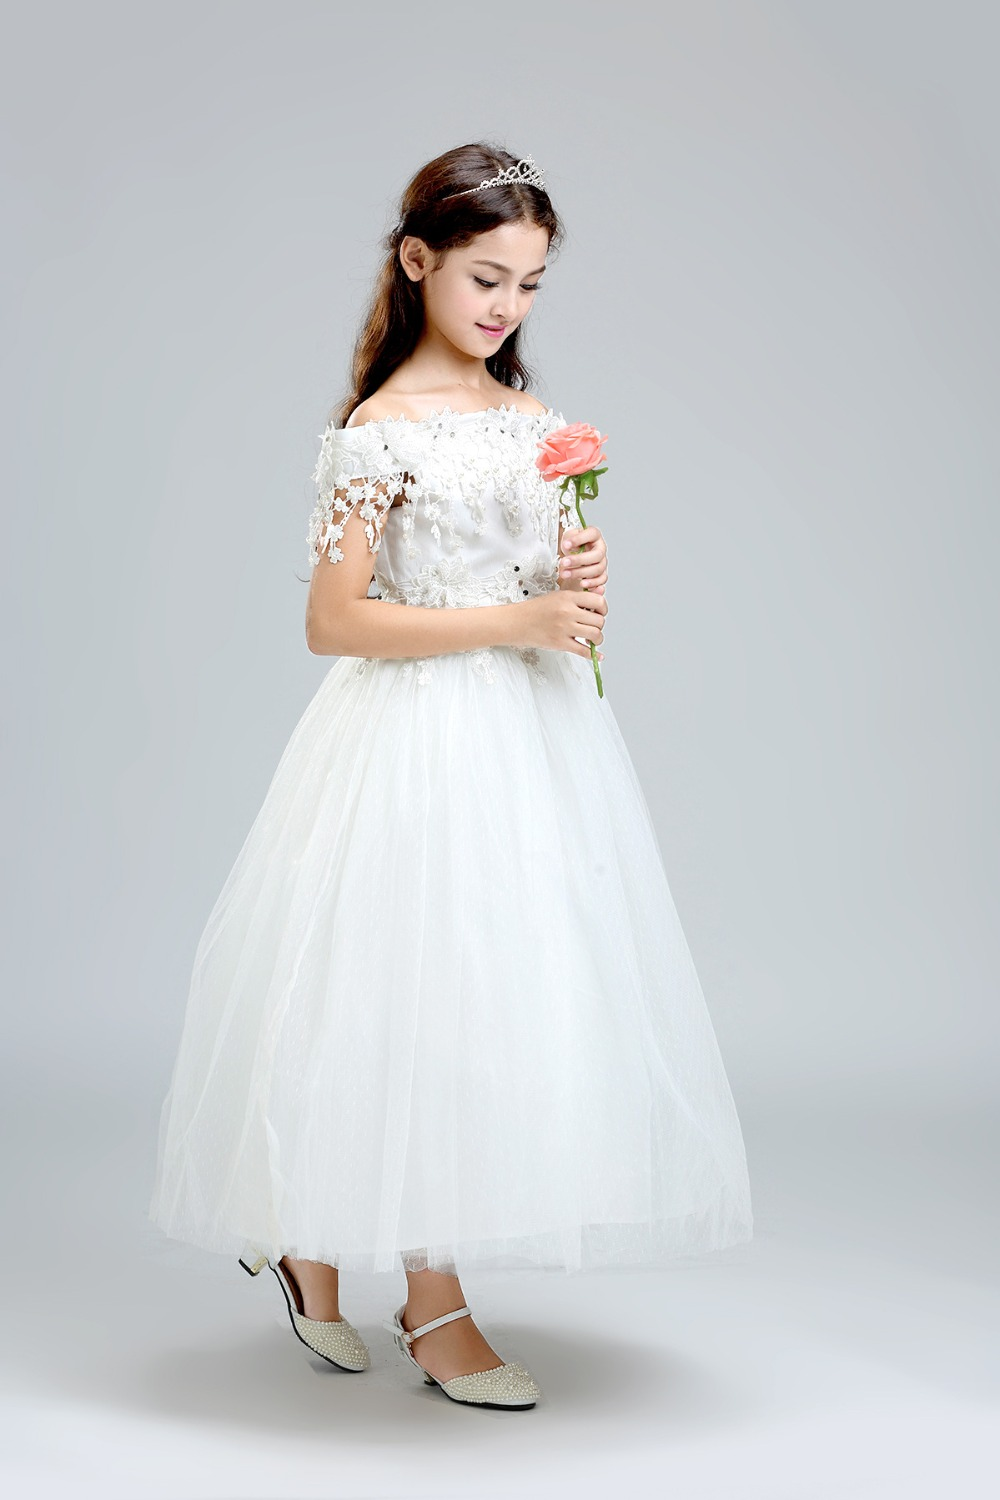 2016 White Lace Flower Girl Dresses For Wedding Ball Gown Off